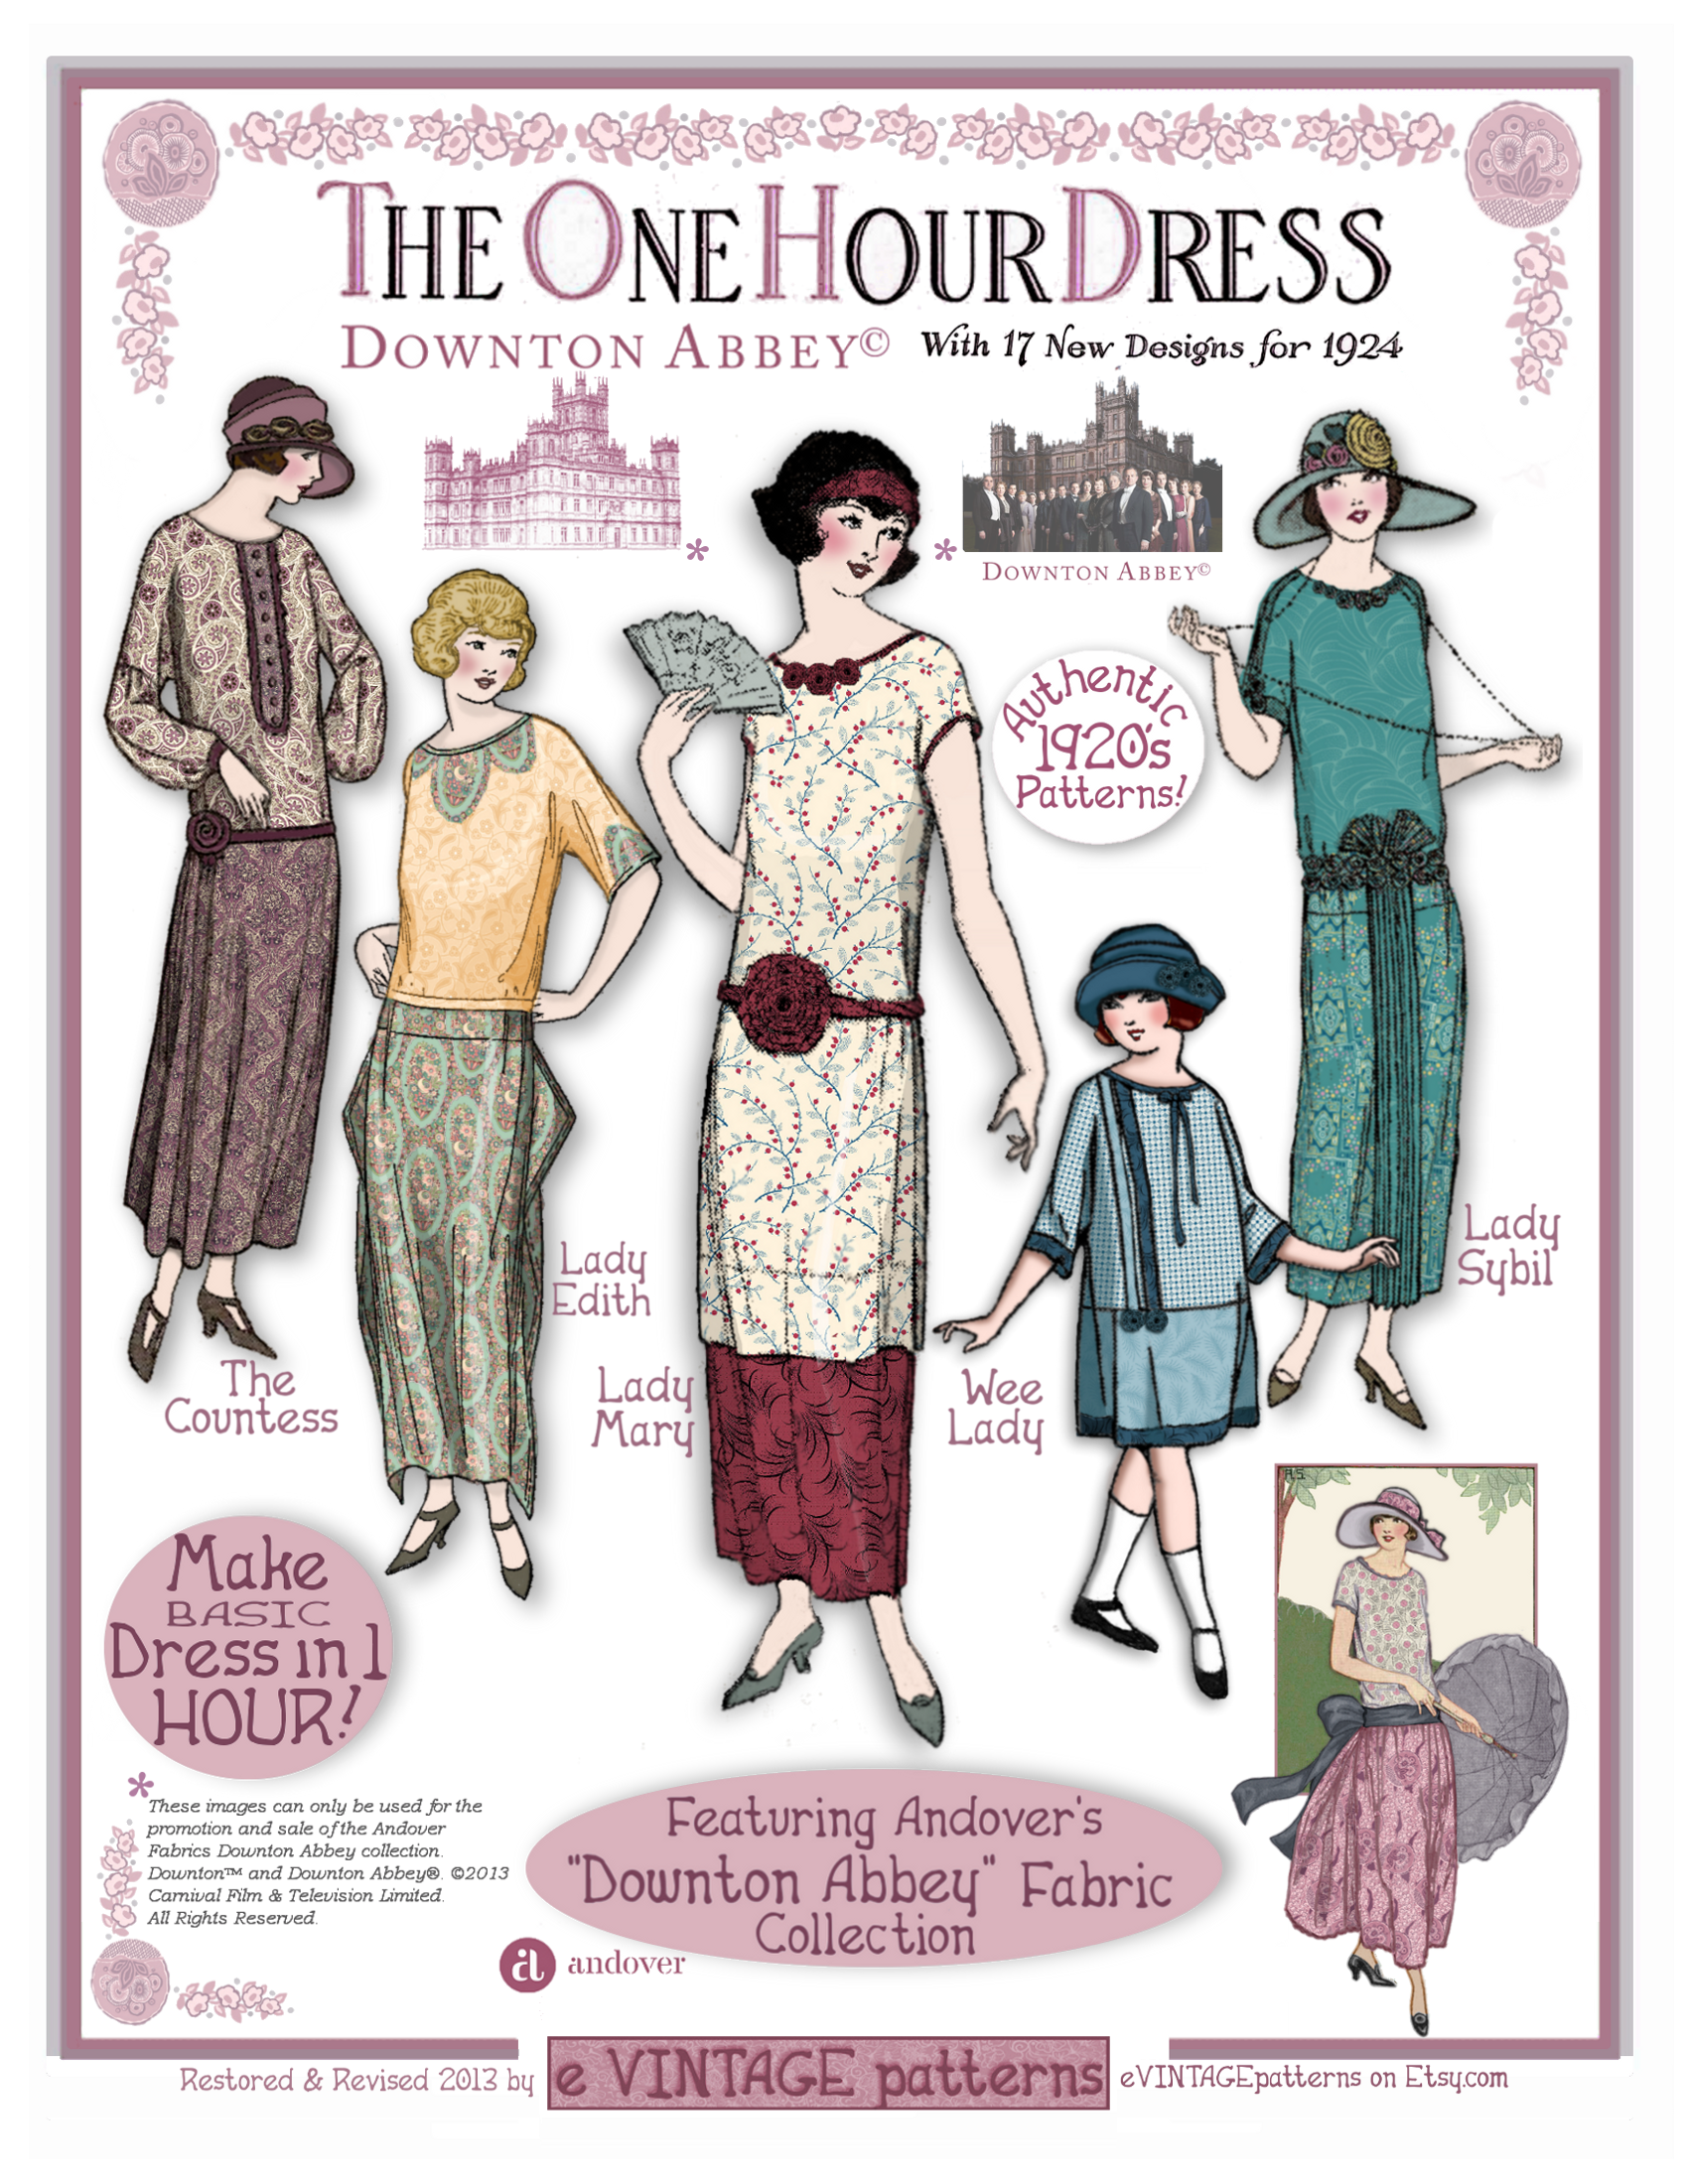 Our Downton Abbey fabrics will be available in stores in just a ...